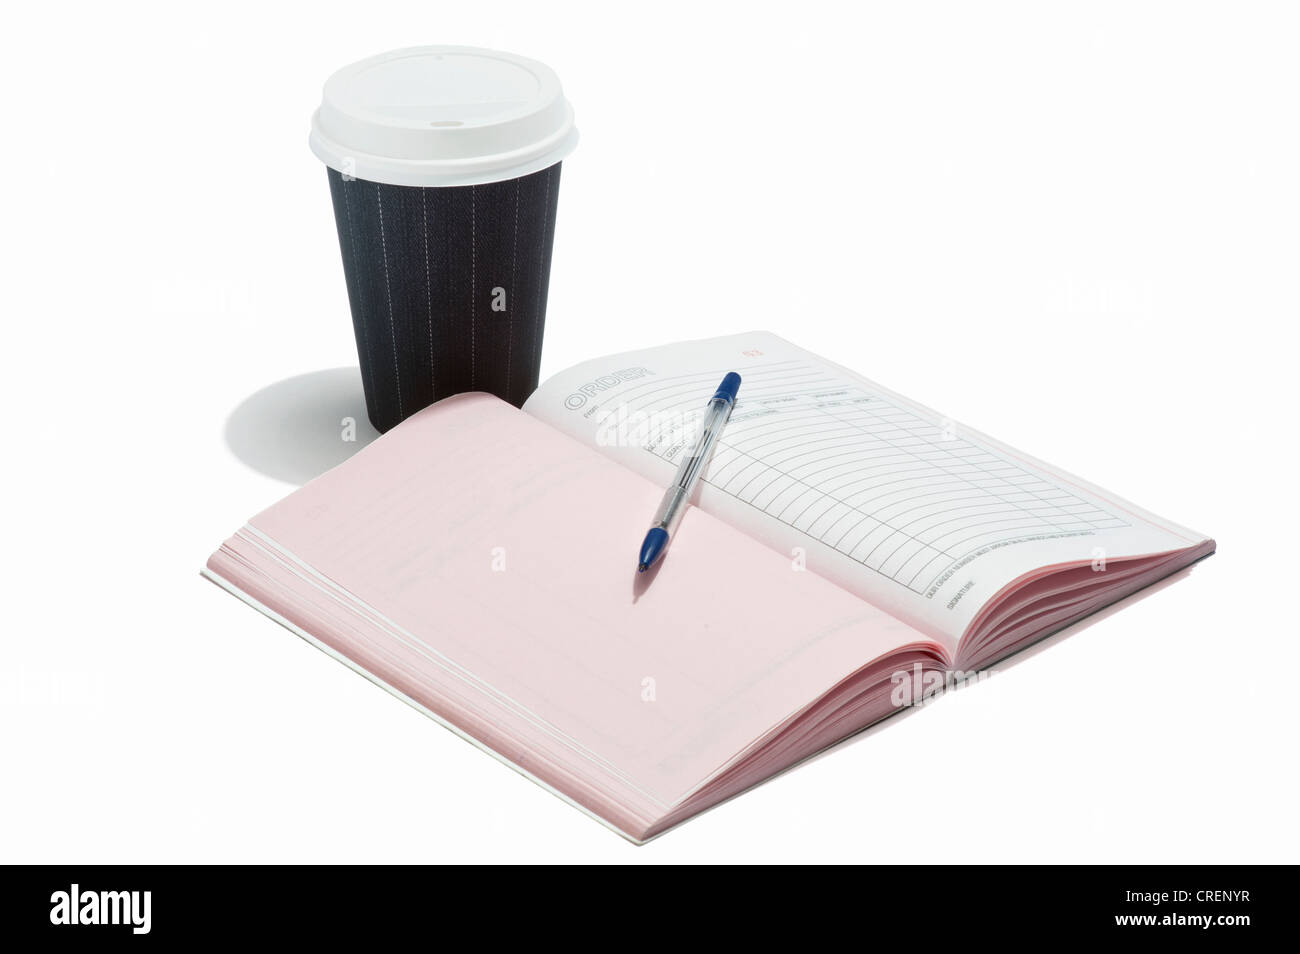 A takeaway drink cup with order book and pen - Stock Image